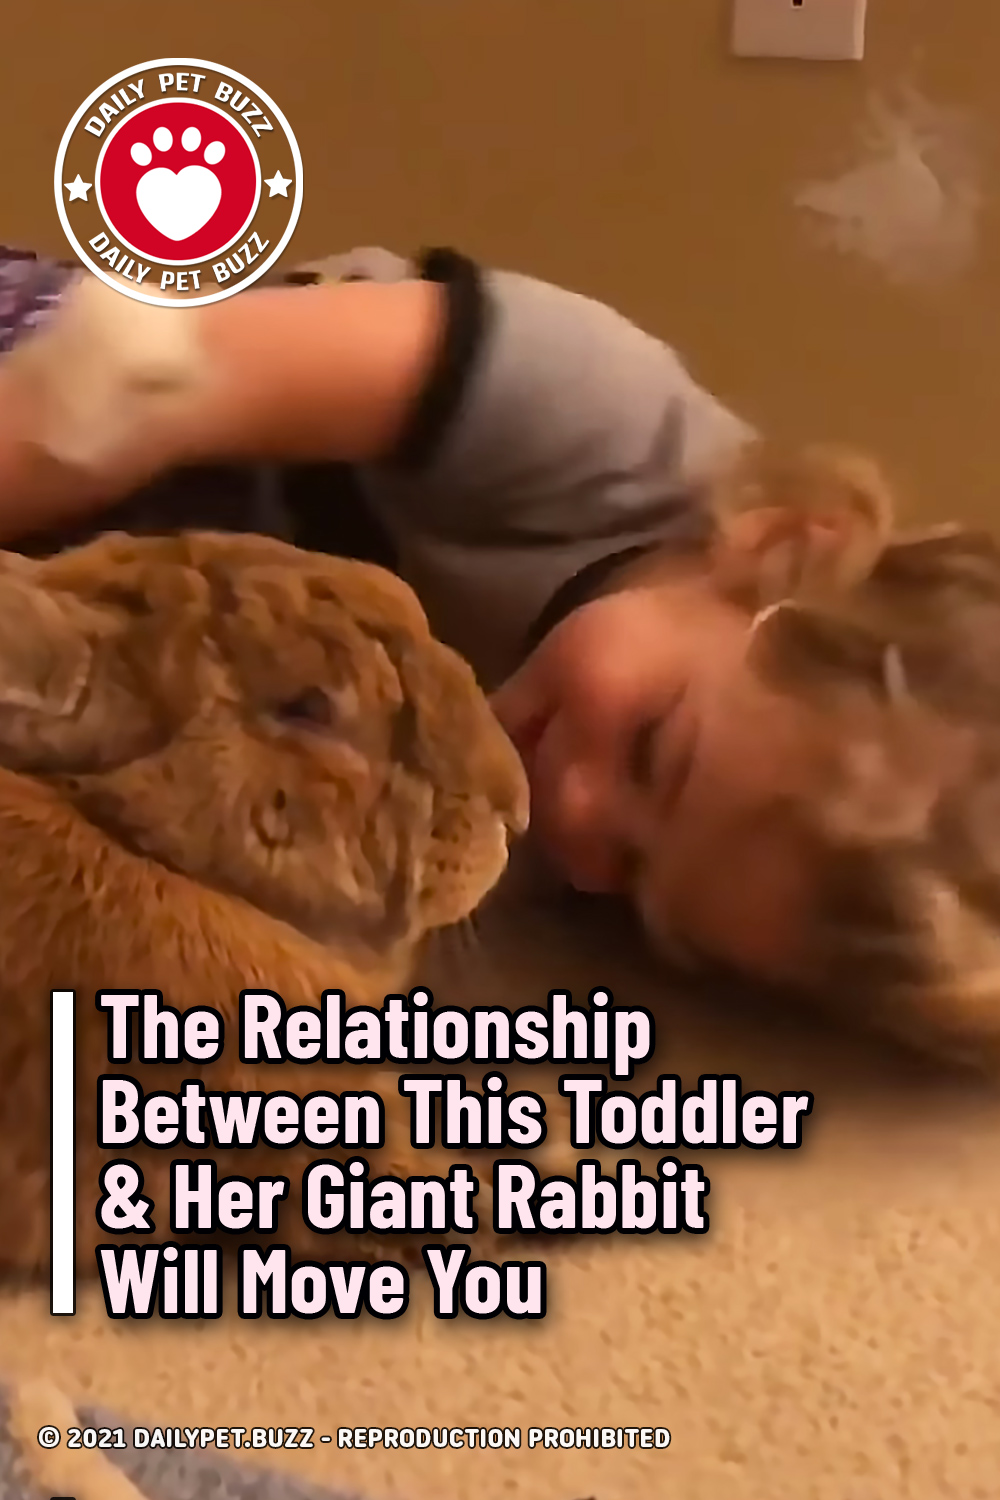 The Relationship Between This Toddler & Her Giant Rabbit Will Move You